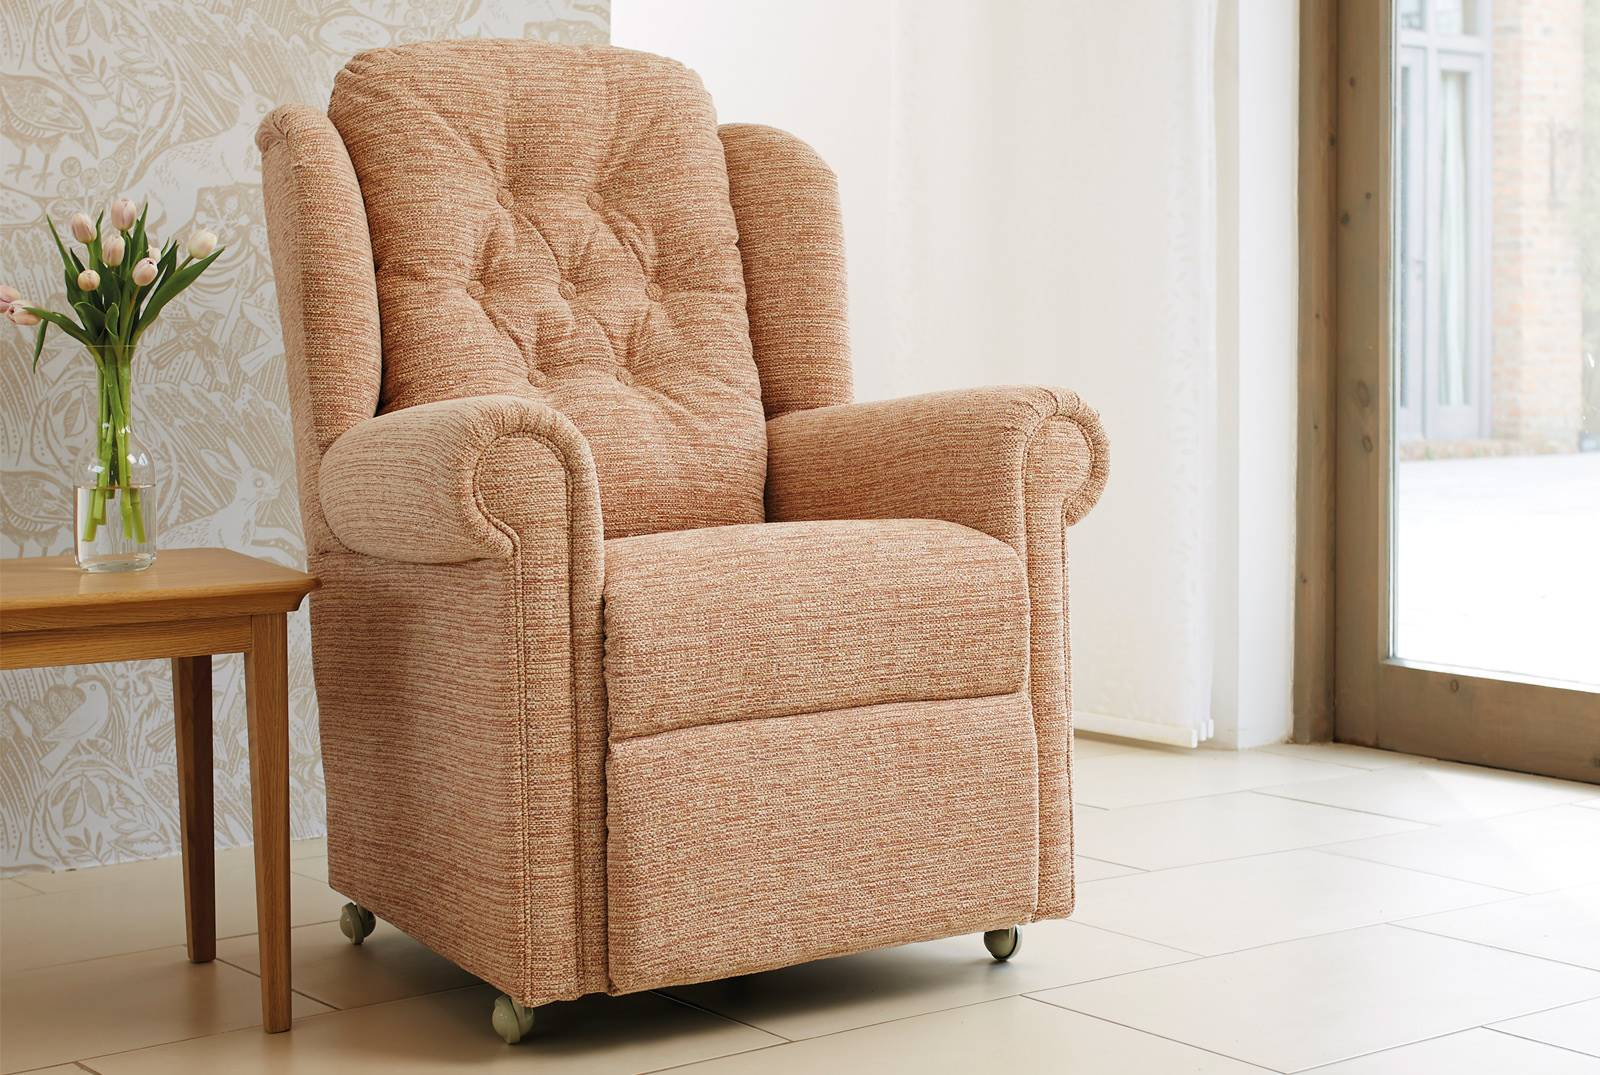 Hampton Relax Comfort Chair in Caledonian Plain Rose